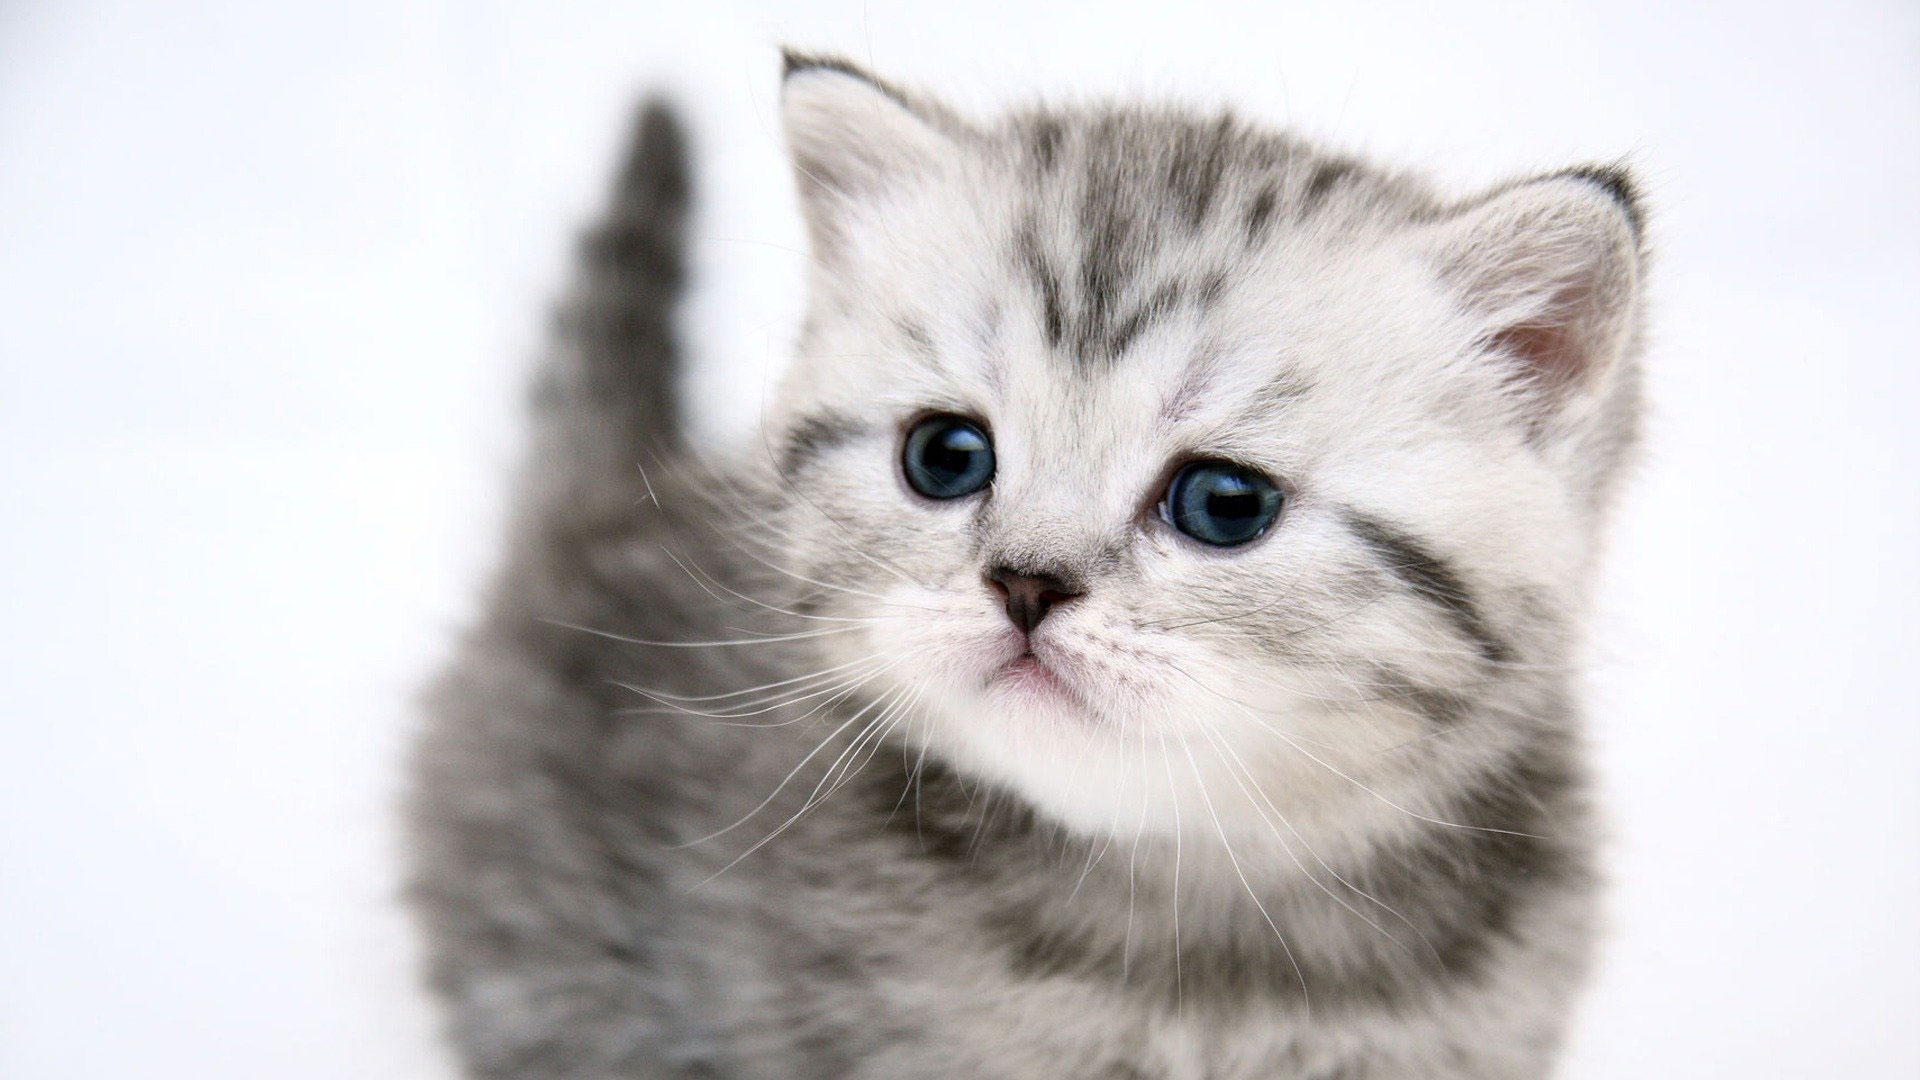 Cat Wallpaper 2 1920x1080